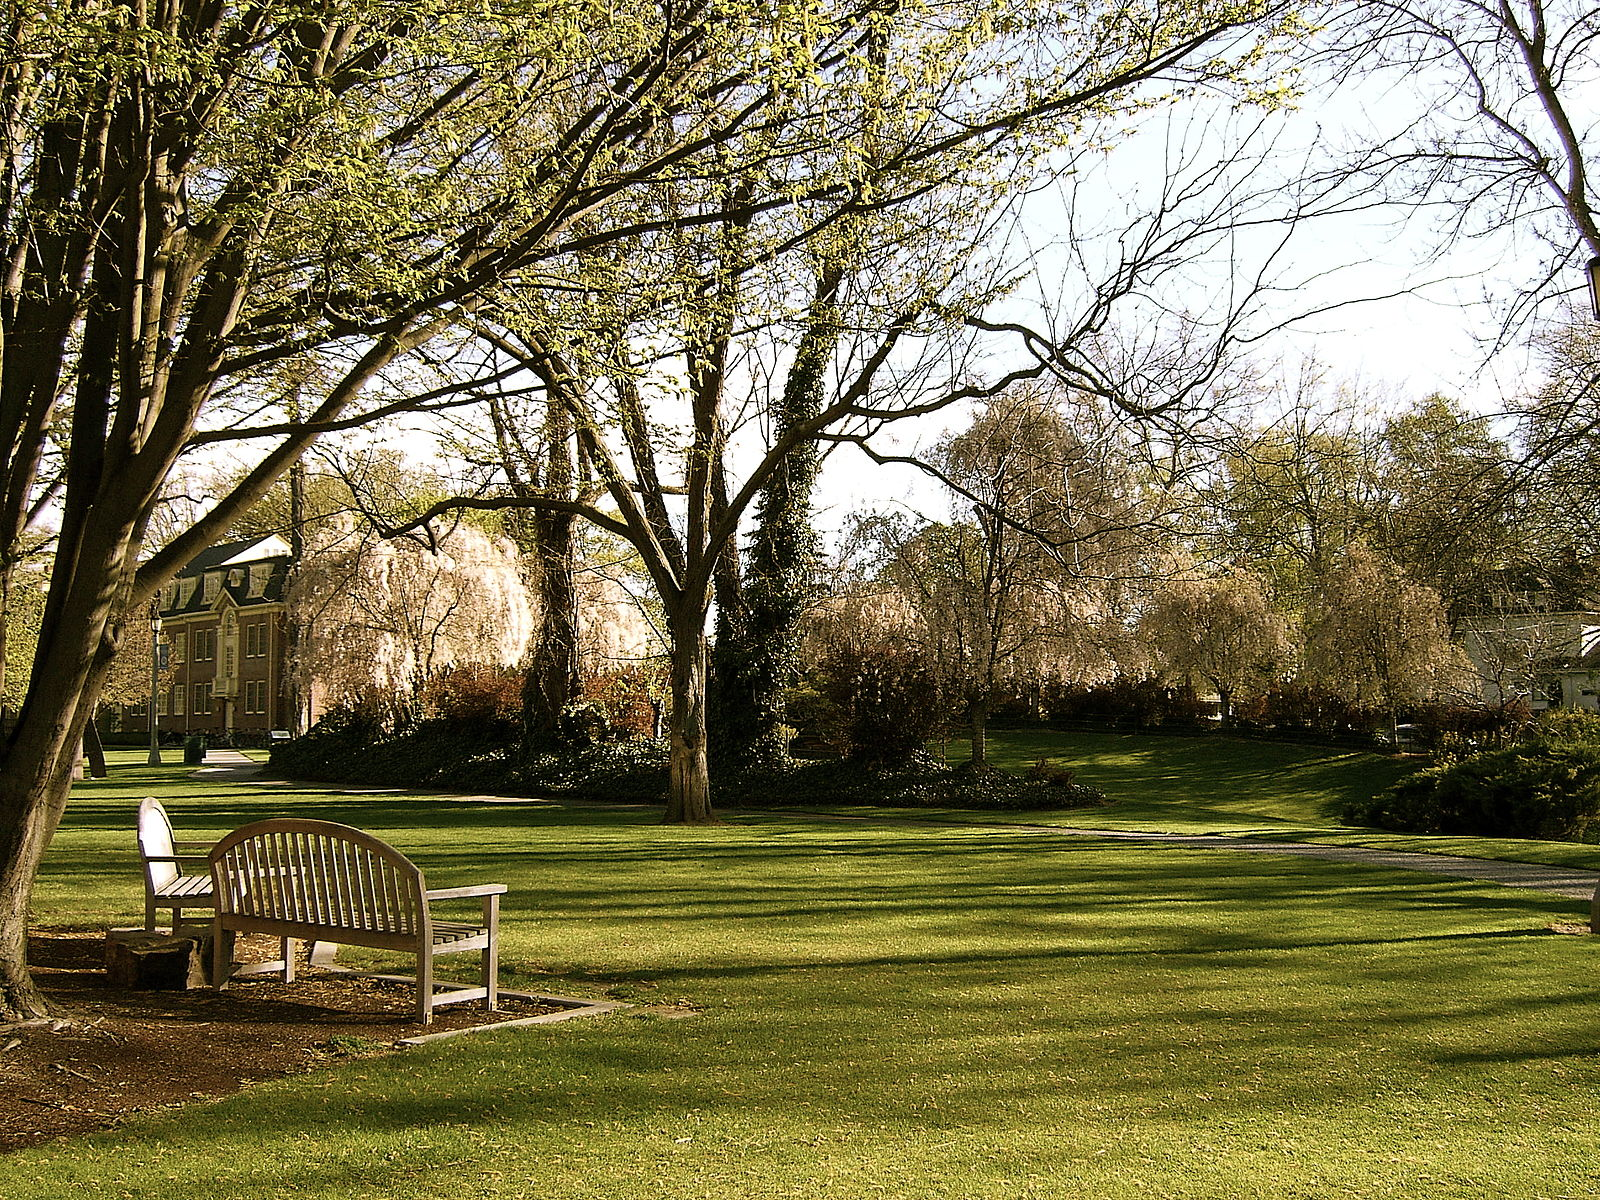 Whitman college field with a bench and trees